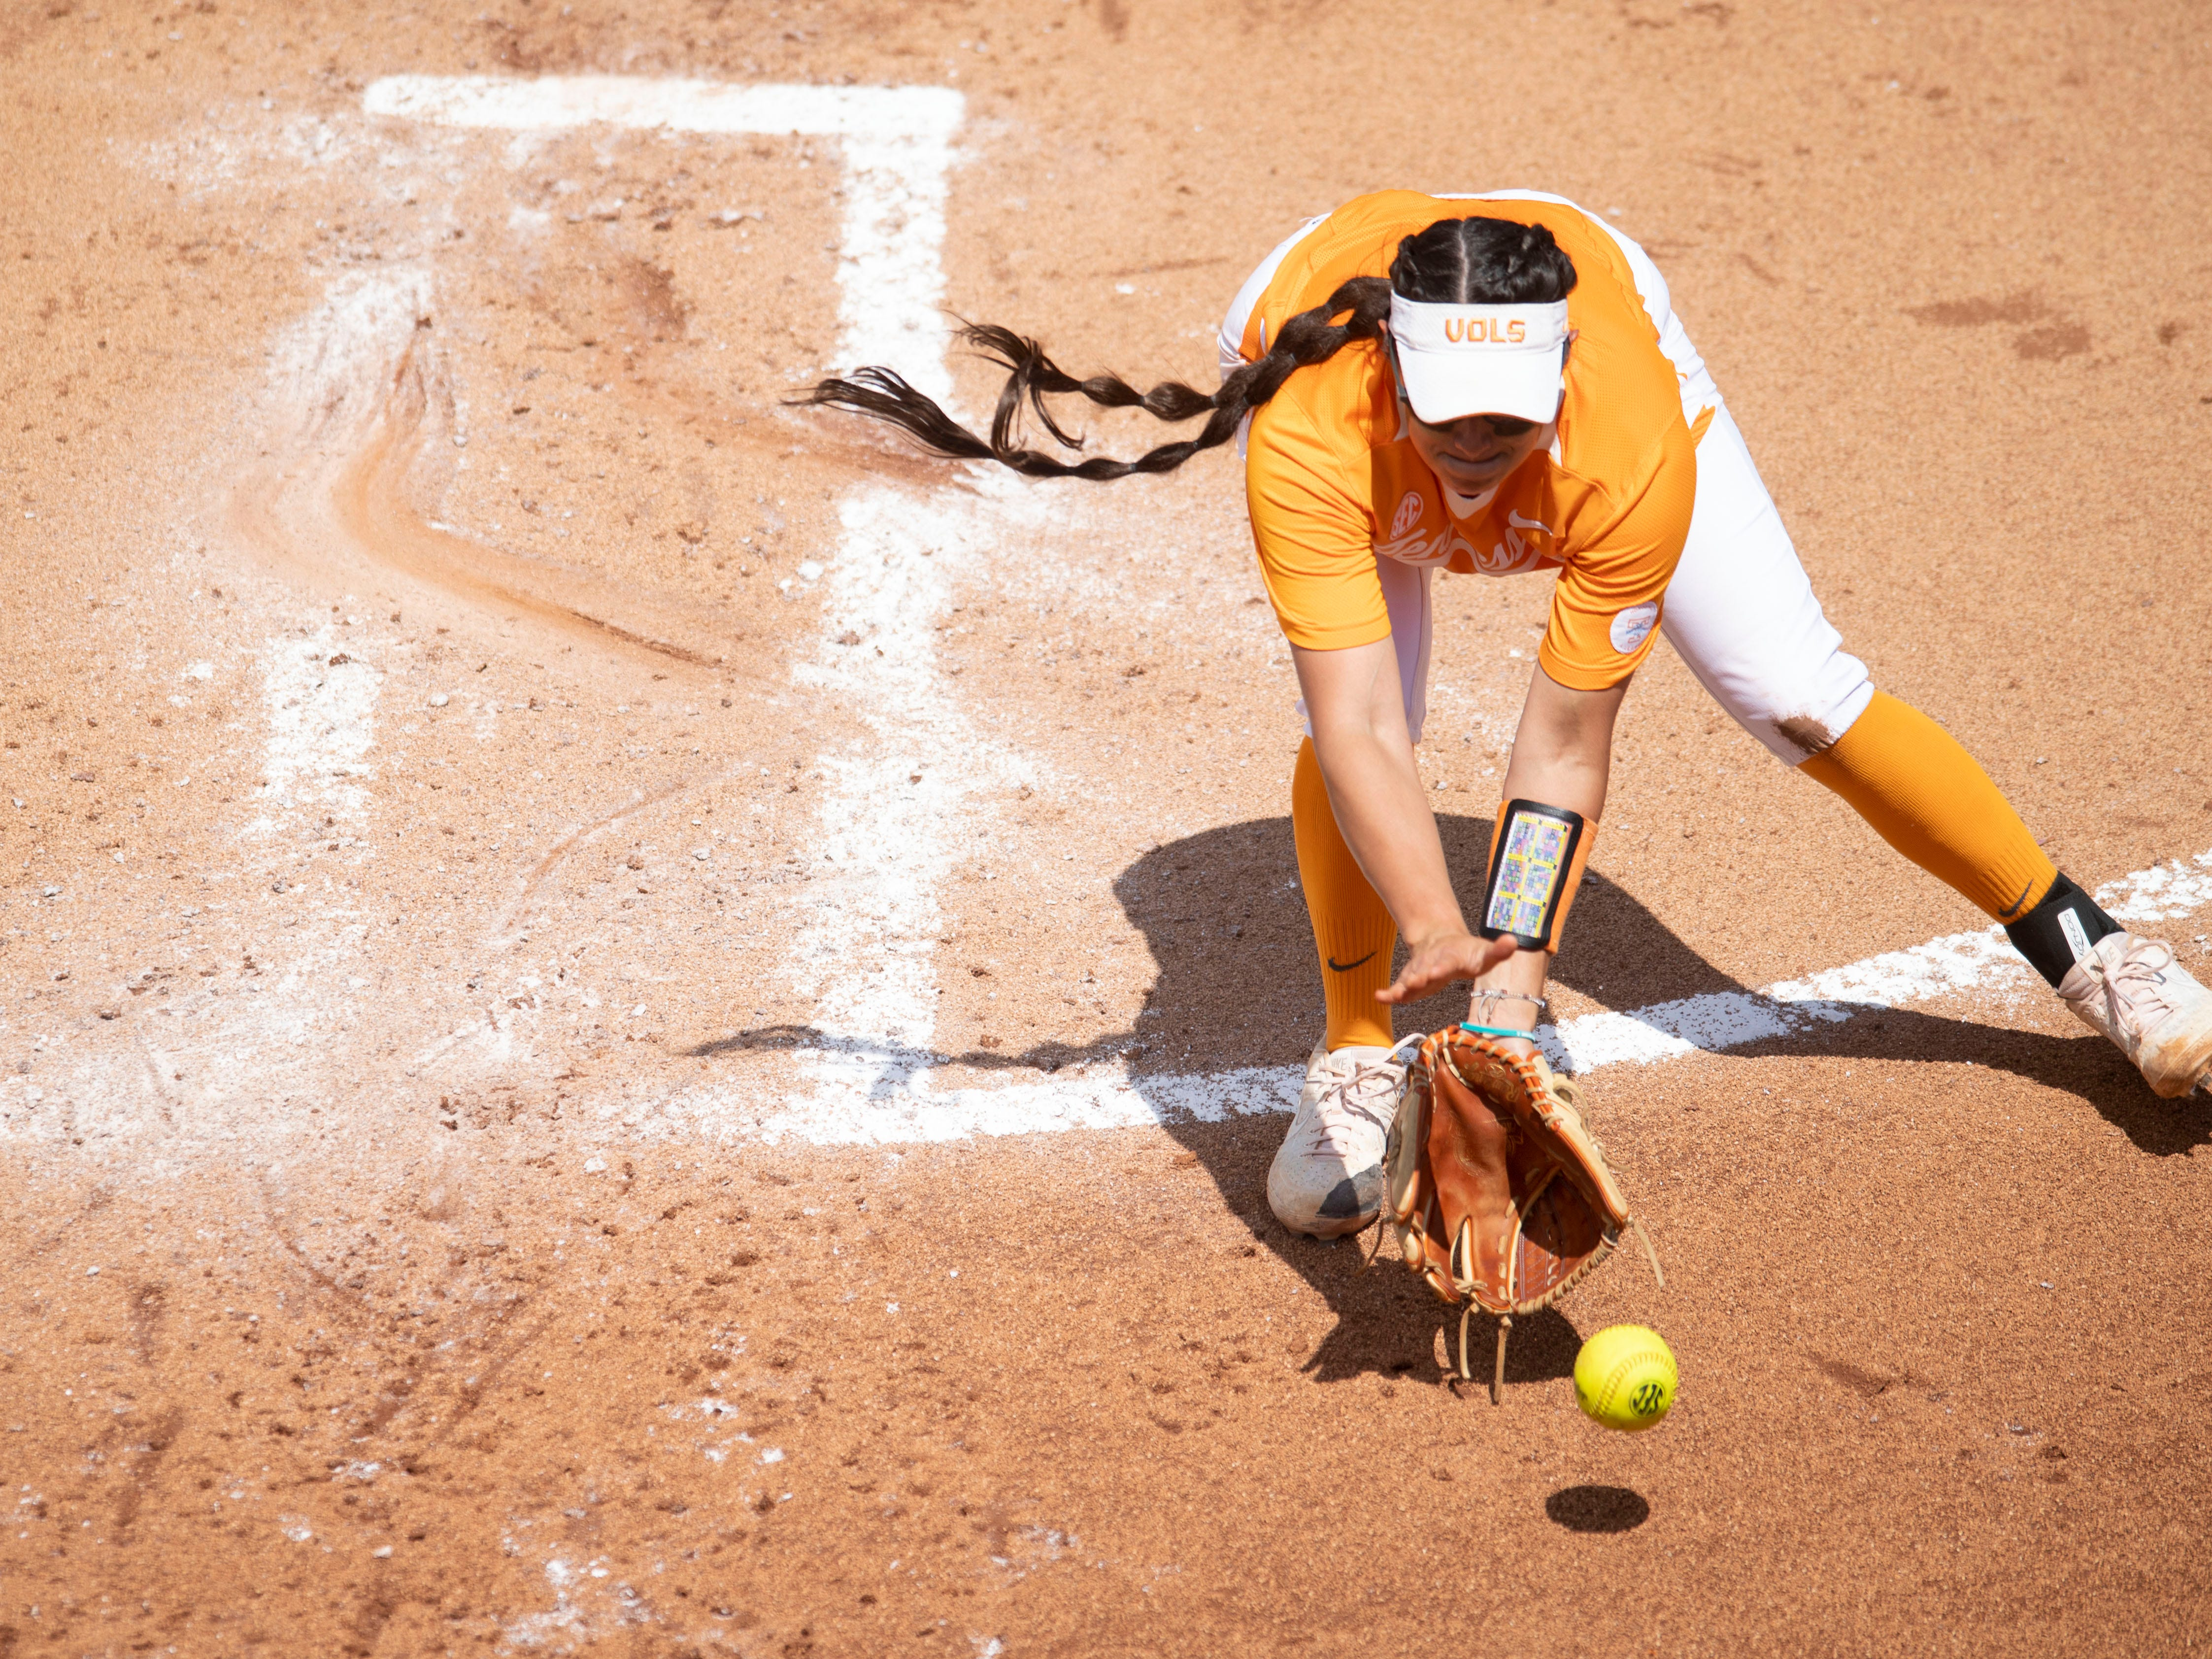 Tennessee's Matty Moss (1) gets in front of a ground ball in the game against Mississippi State at Sherri Parker Lee Stadium on Sunday, April 14, 2019.